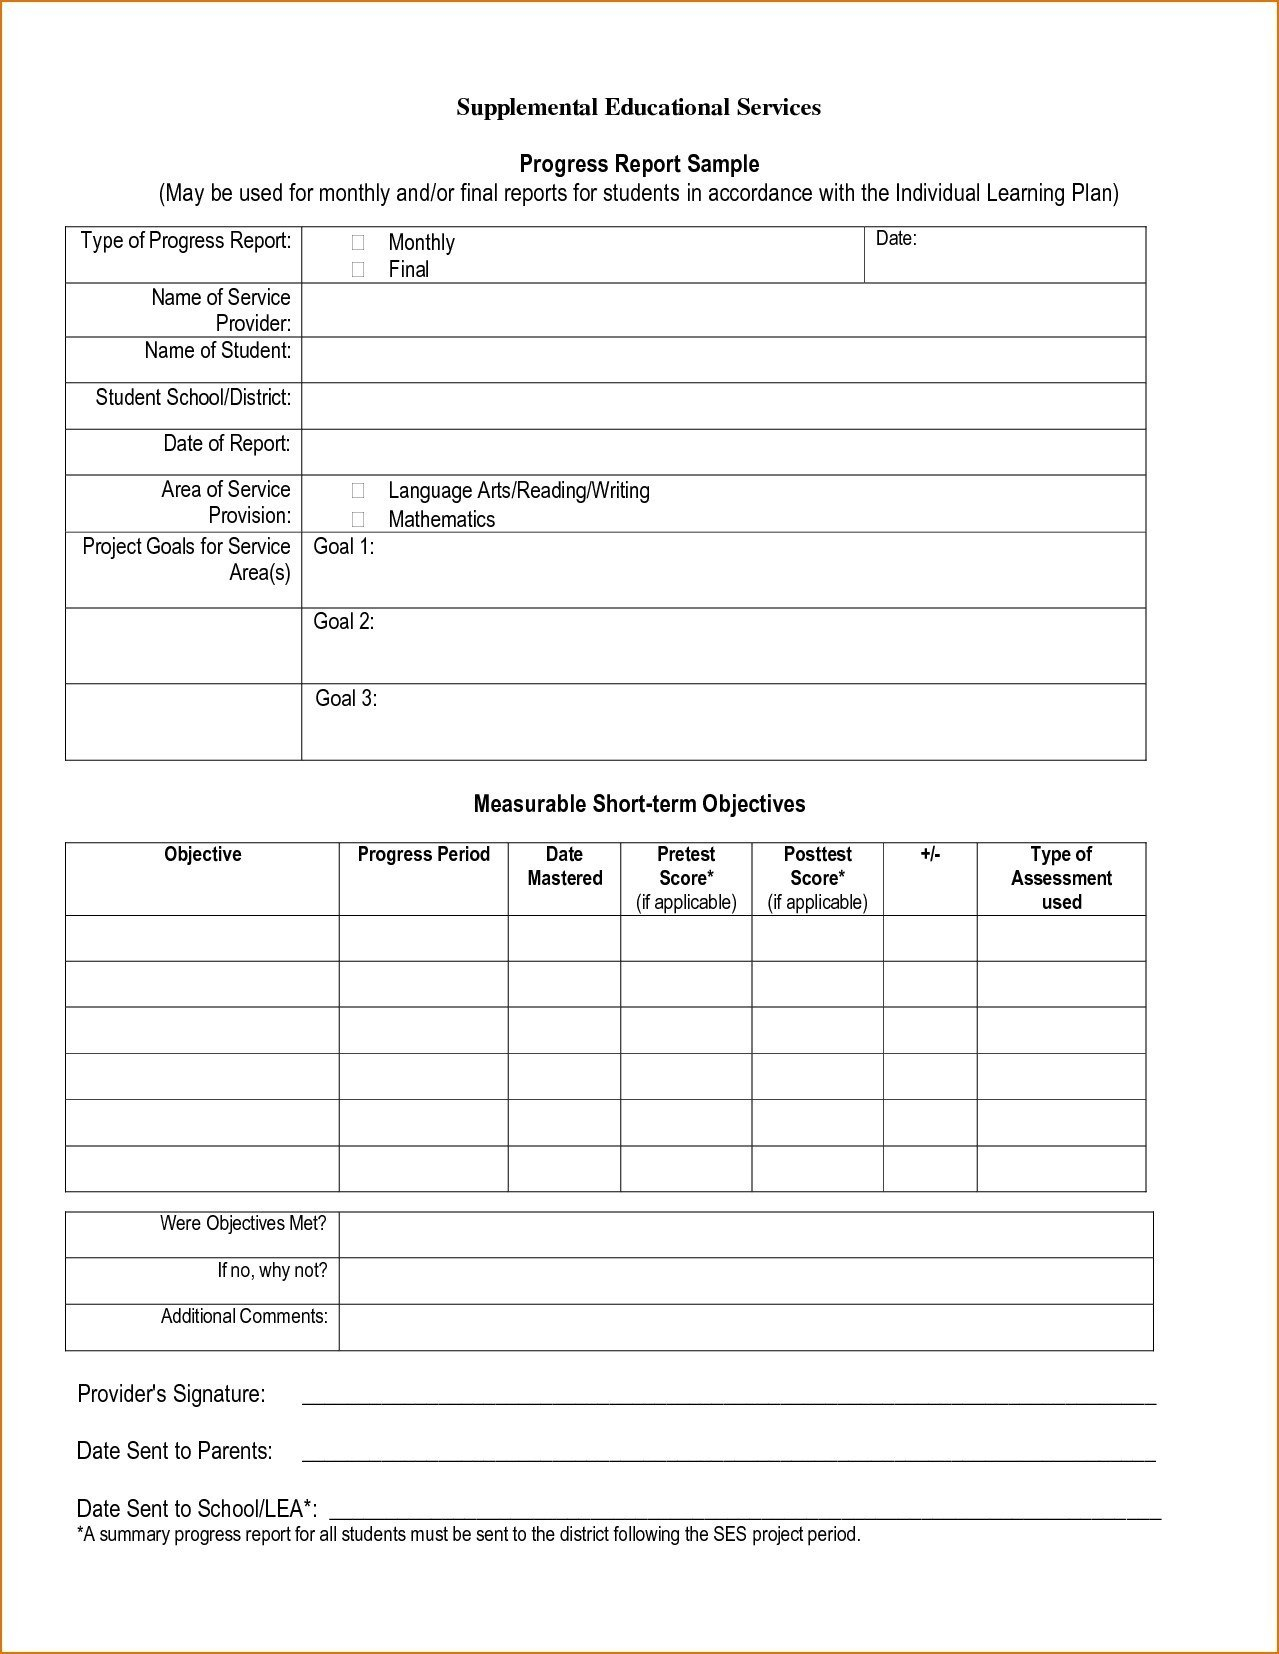 Homeschool Report Cardplate New Middle School Cool Progress Of Intended For School Report Template Free